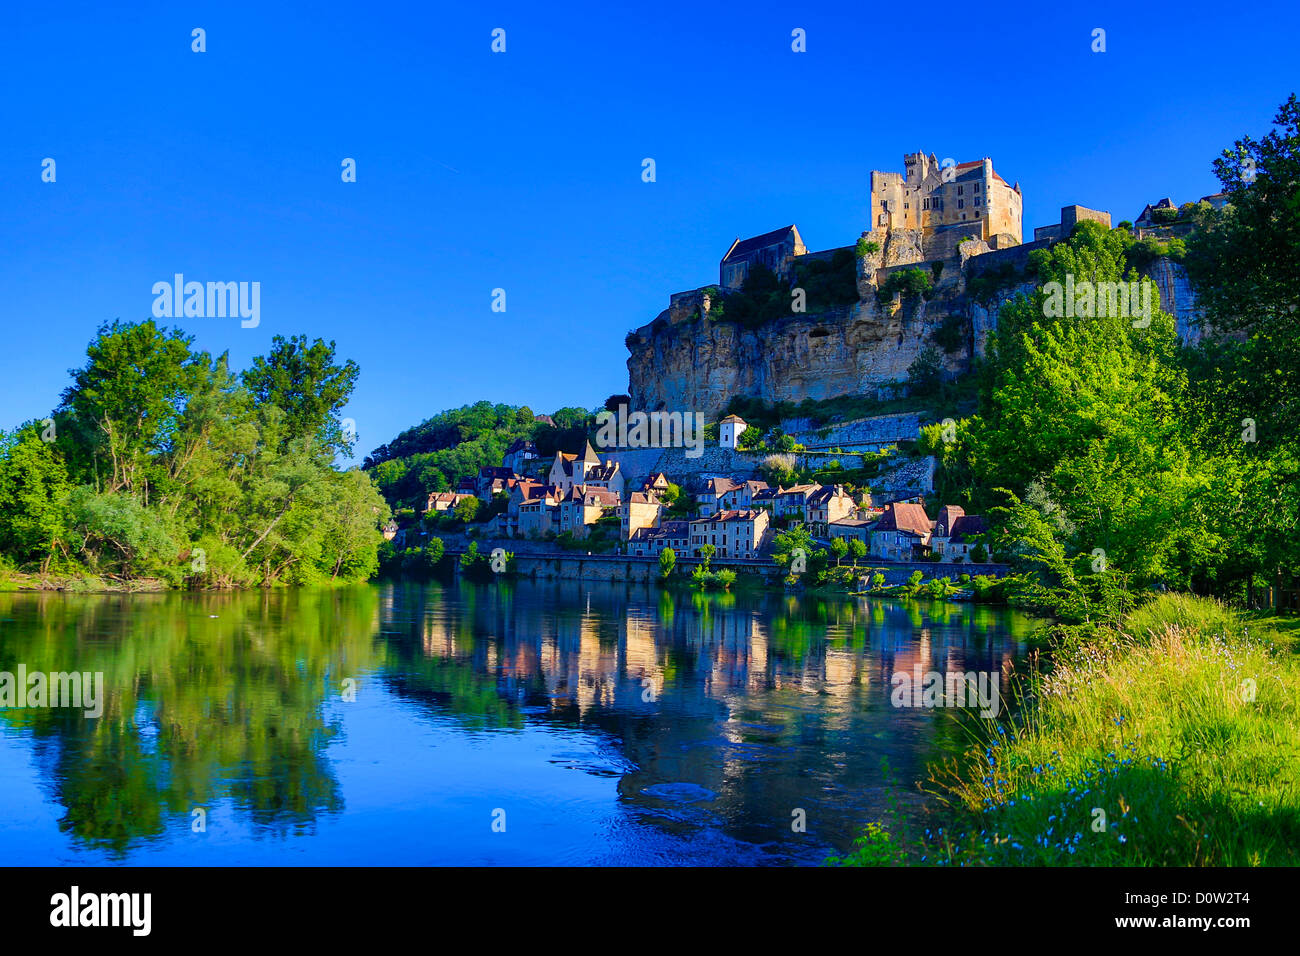 France, Europe, travel, Dordogne, Beynac, architecture, castle, landscape, medieval, morning, river, skyline, steep, - Stock Image